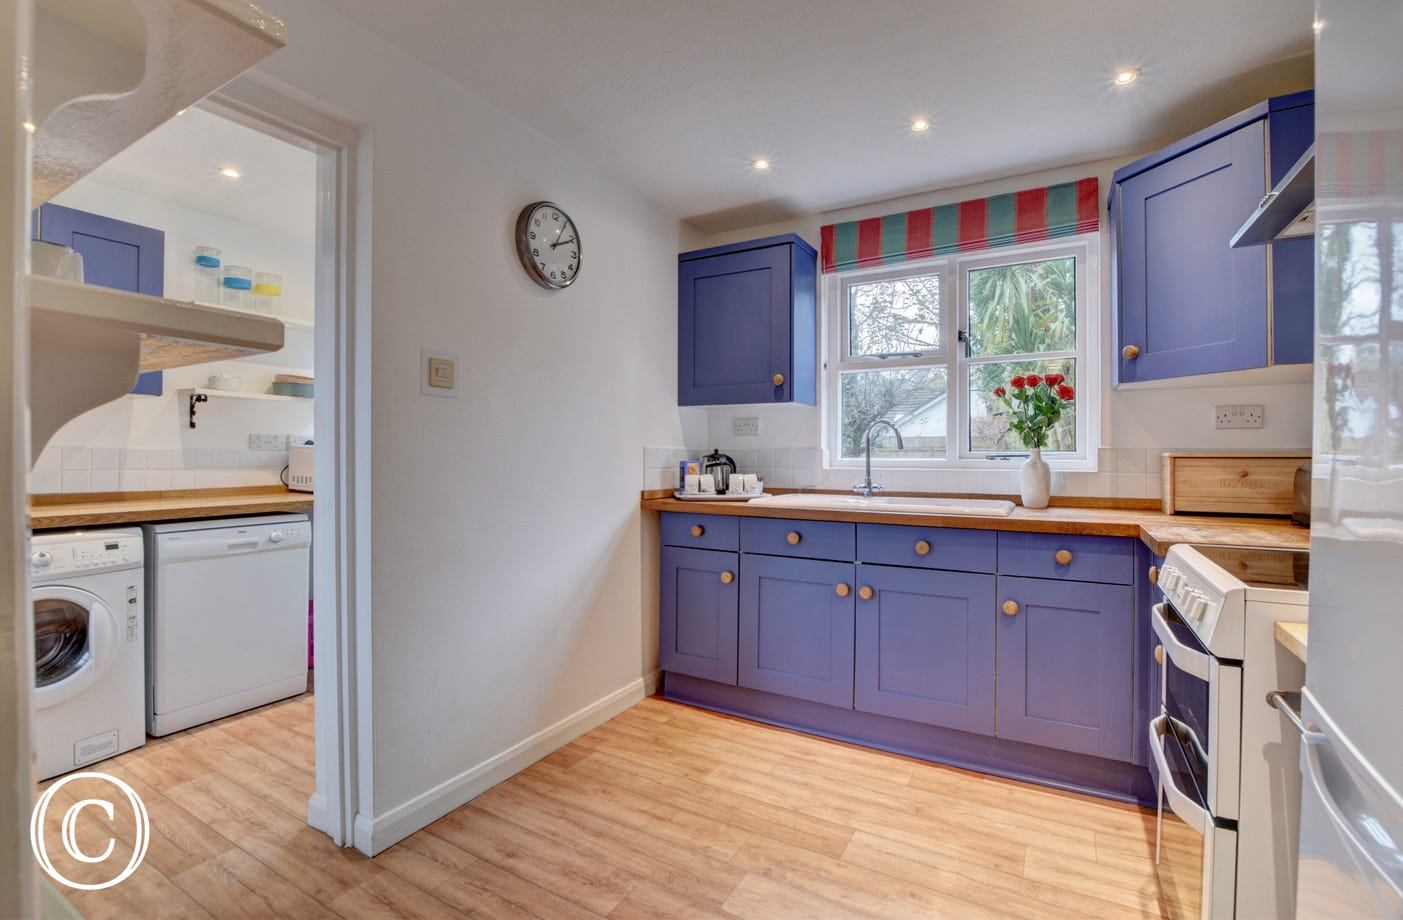 The well equipped kitchen and utility room have everything you need